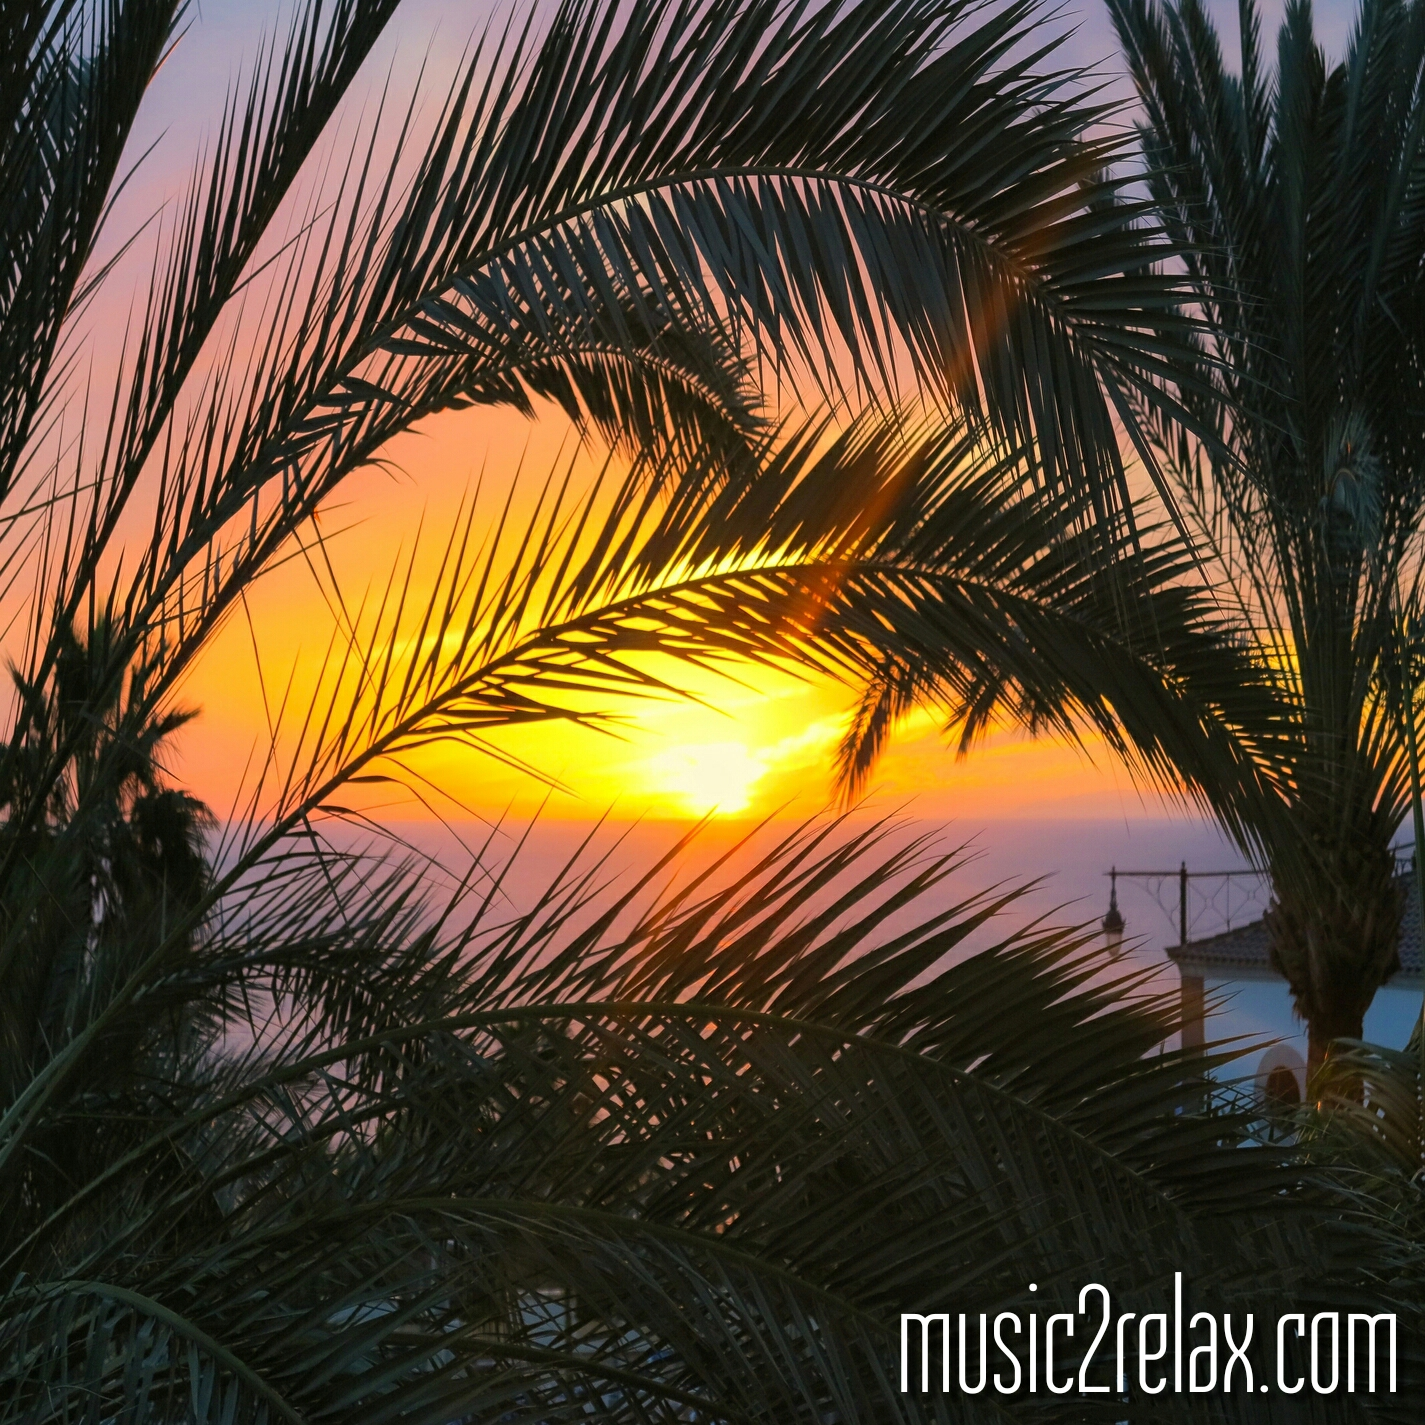 Relaxing music for studying mp3 downloads | music2relax. Com.